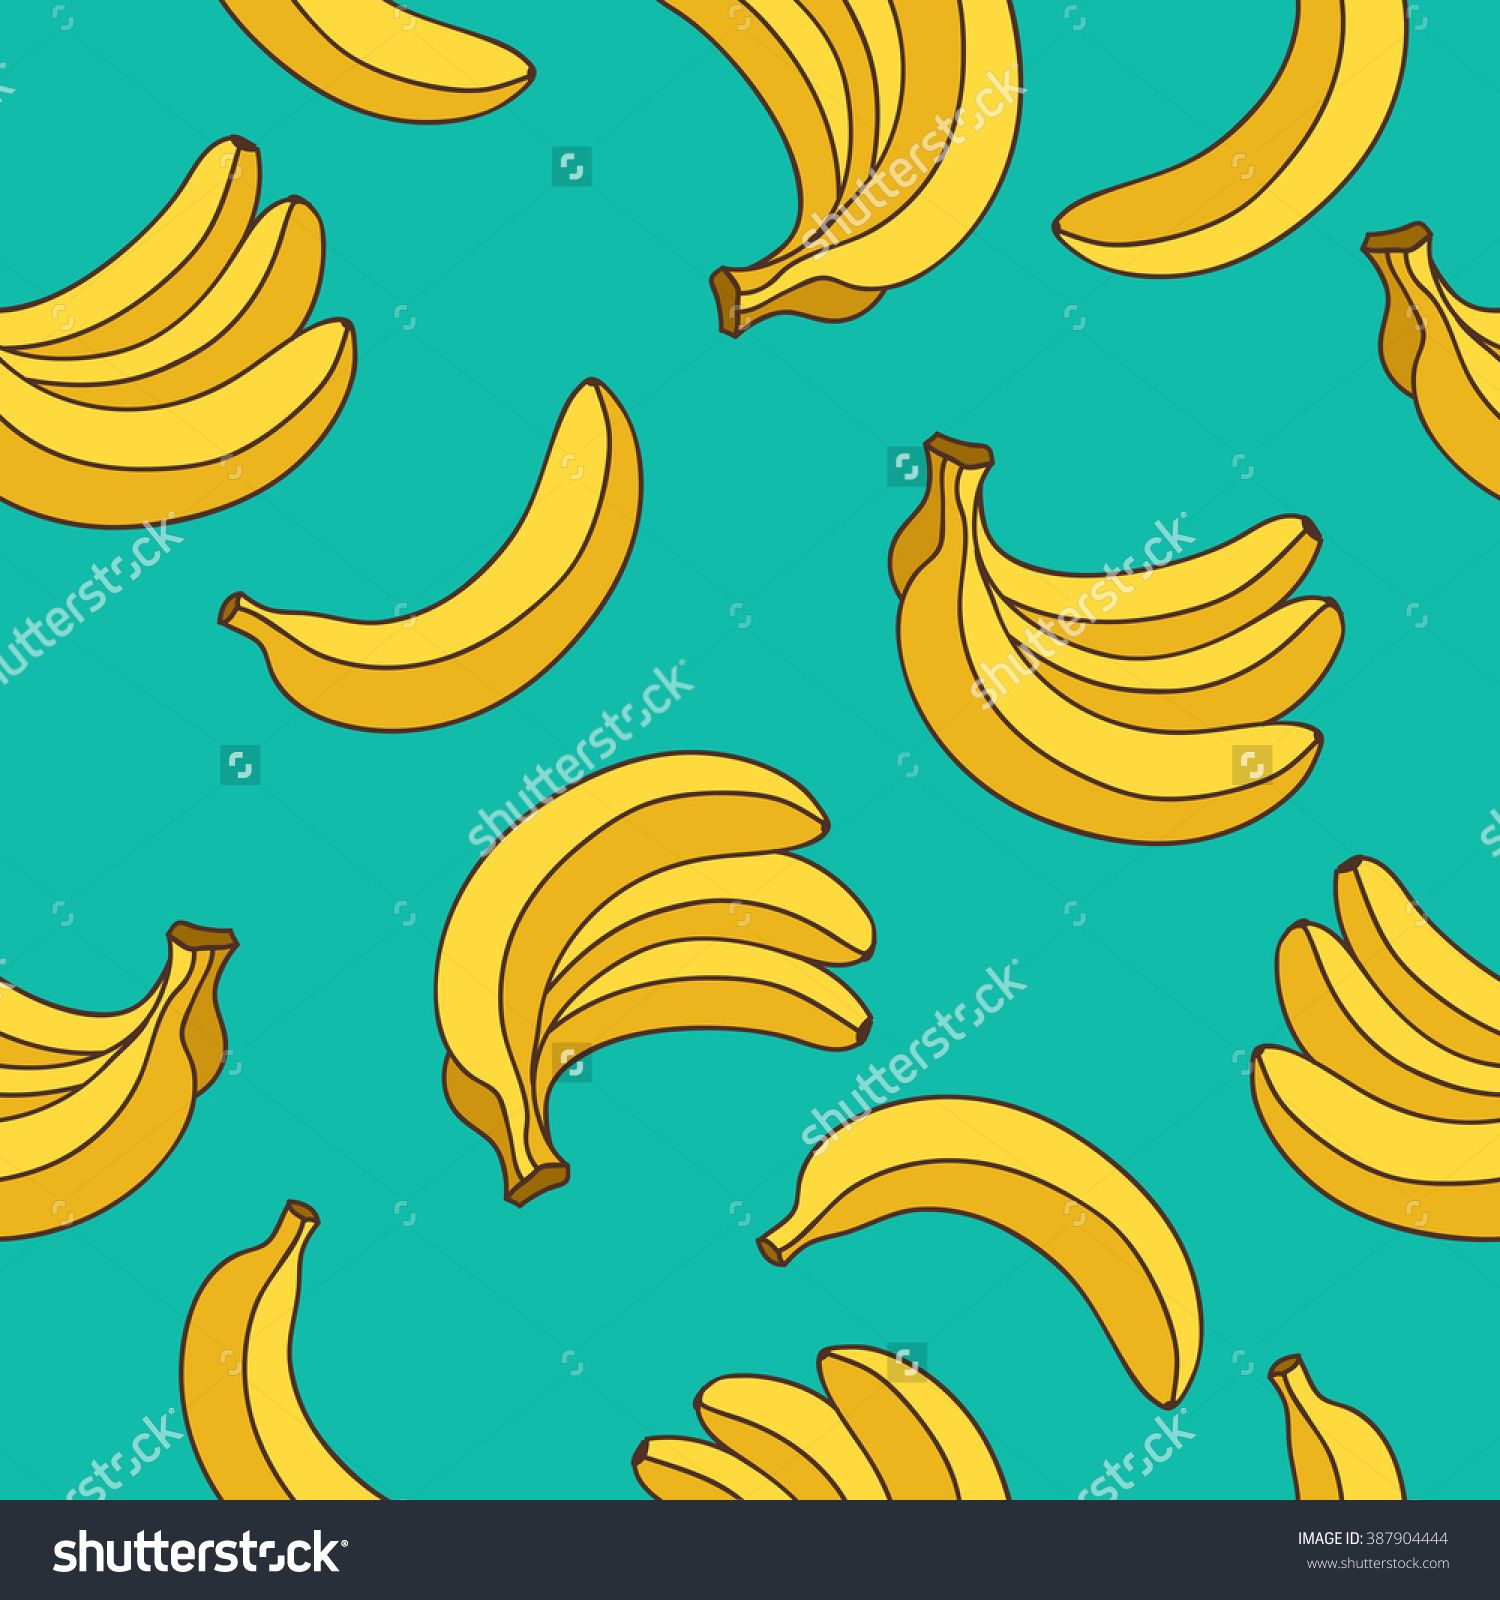 Seamless vector pattern of yellow bananas on a blue background ...